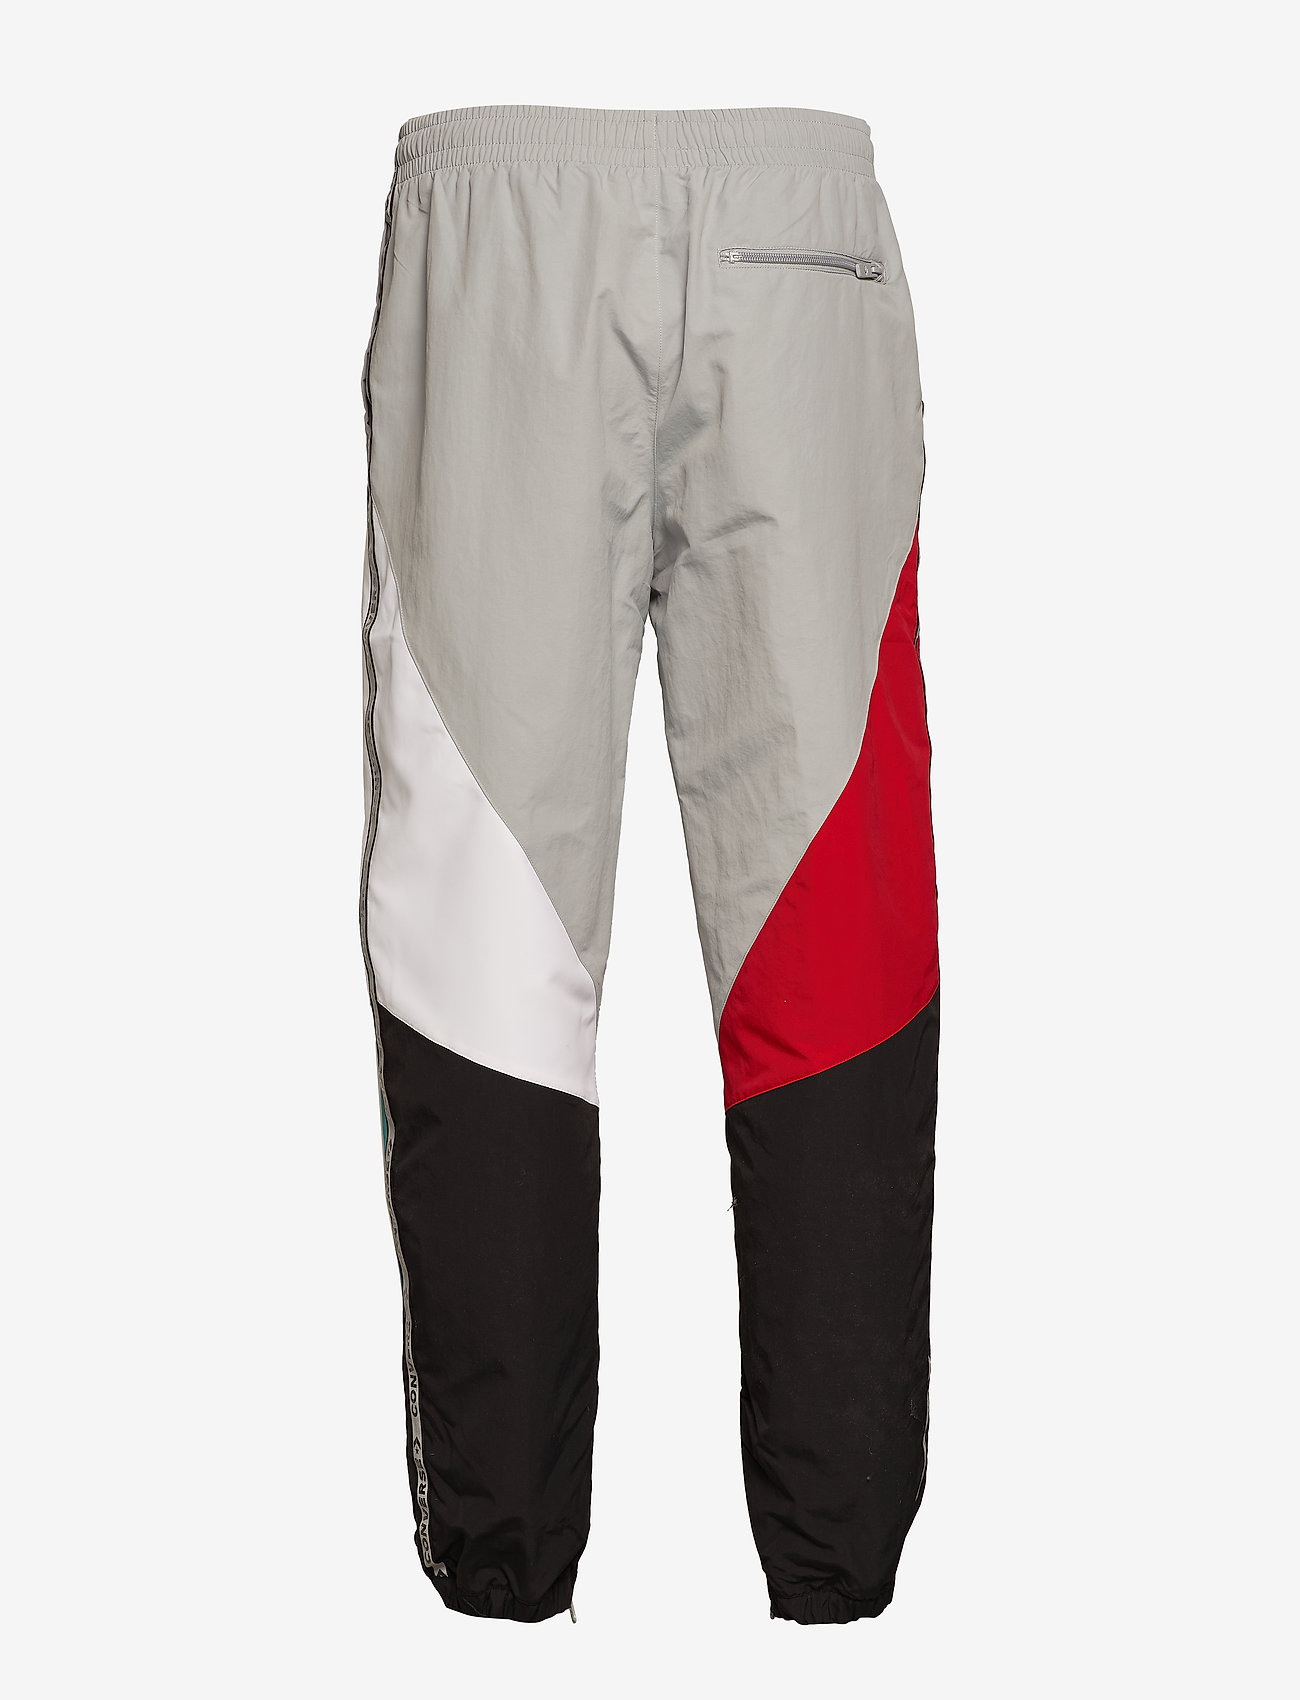 Converse Archive Woven Track Pant (Wolf Grey) - Converse 8EYc0L